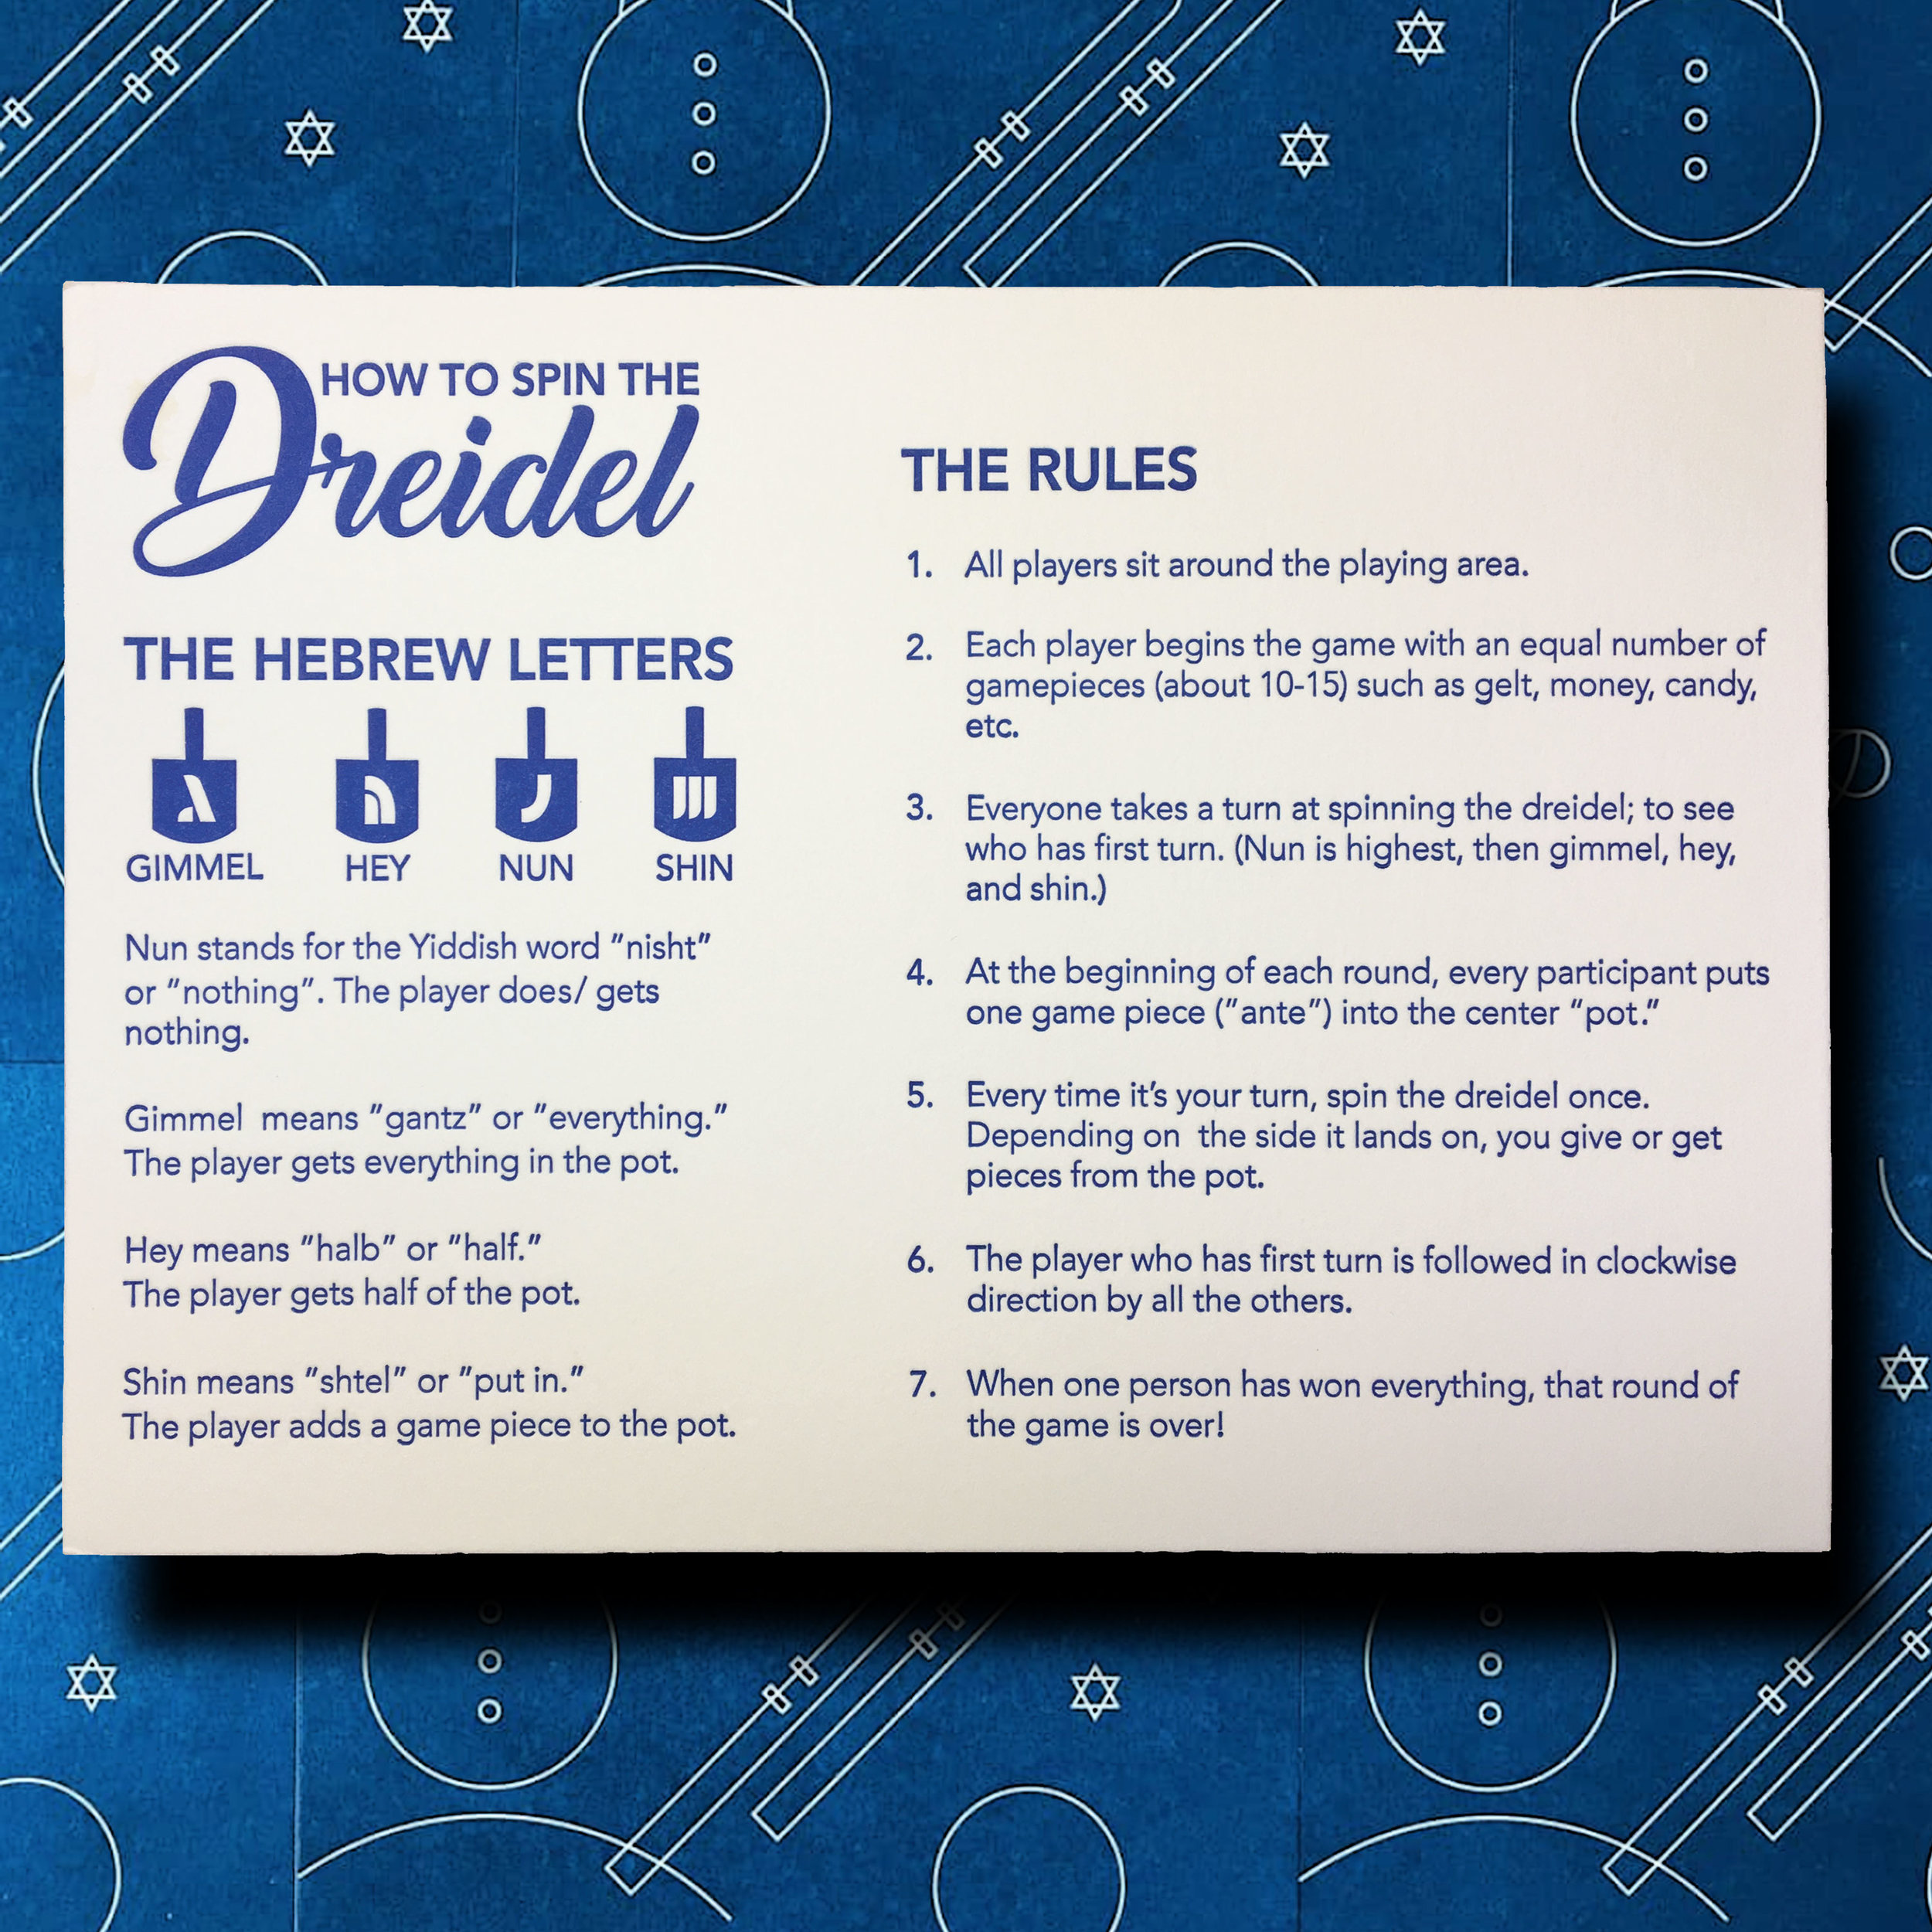 Let's not kid ourselves. Most of us have played the dreidel game only once or twice, and could use a rules refresher. So we commissioned San Francisco-based artist Leah Jachimowicz, owner of Coffee n Cream Press, to create a custom letterpress dreidel rules reference card for you.